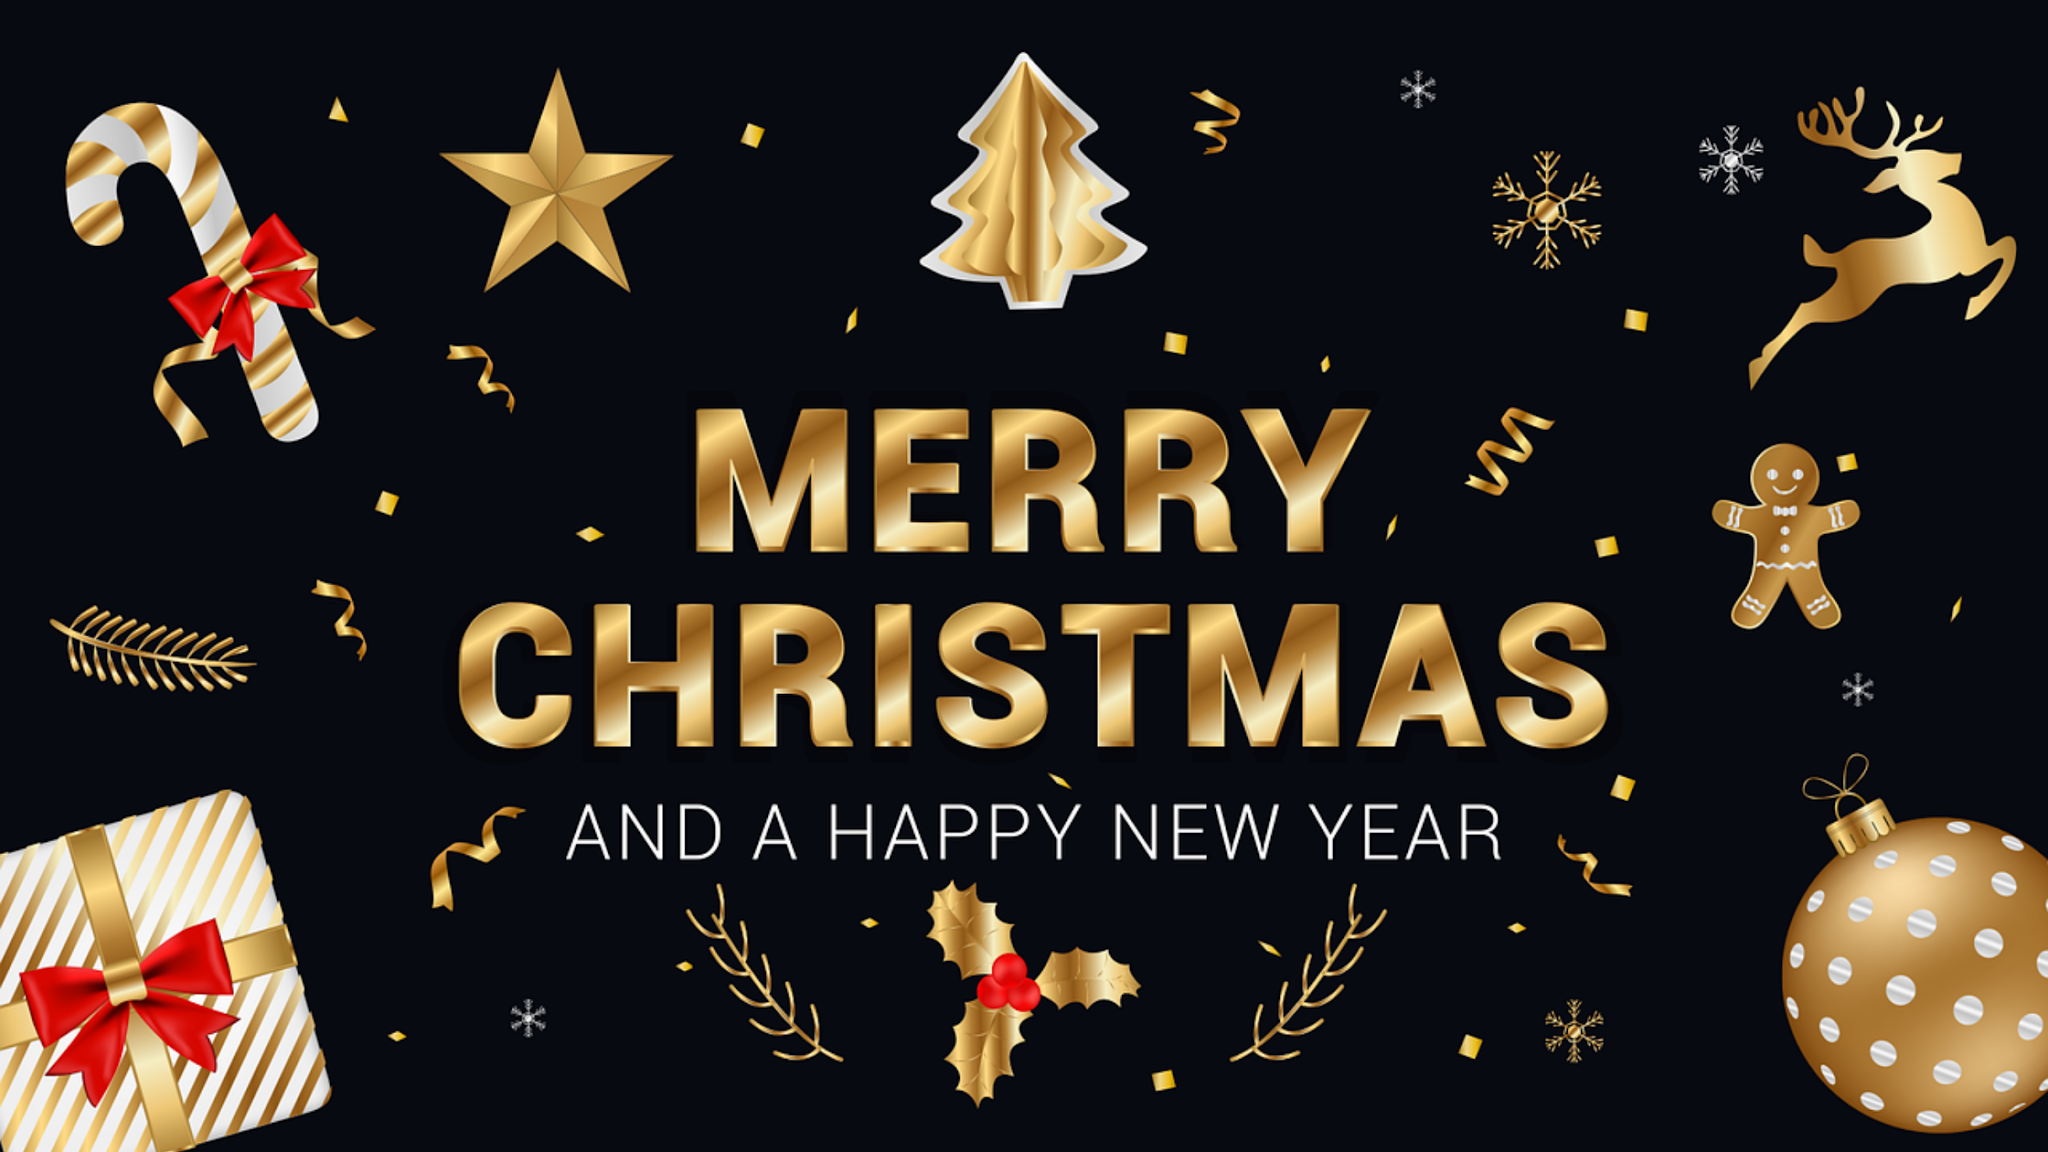 merry christmas & happy new year 2021, happy new year sms